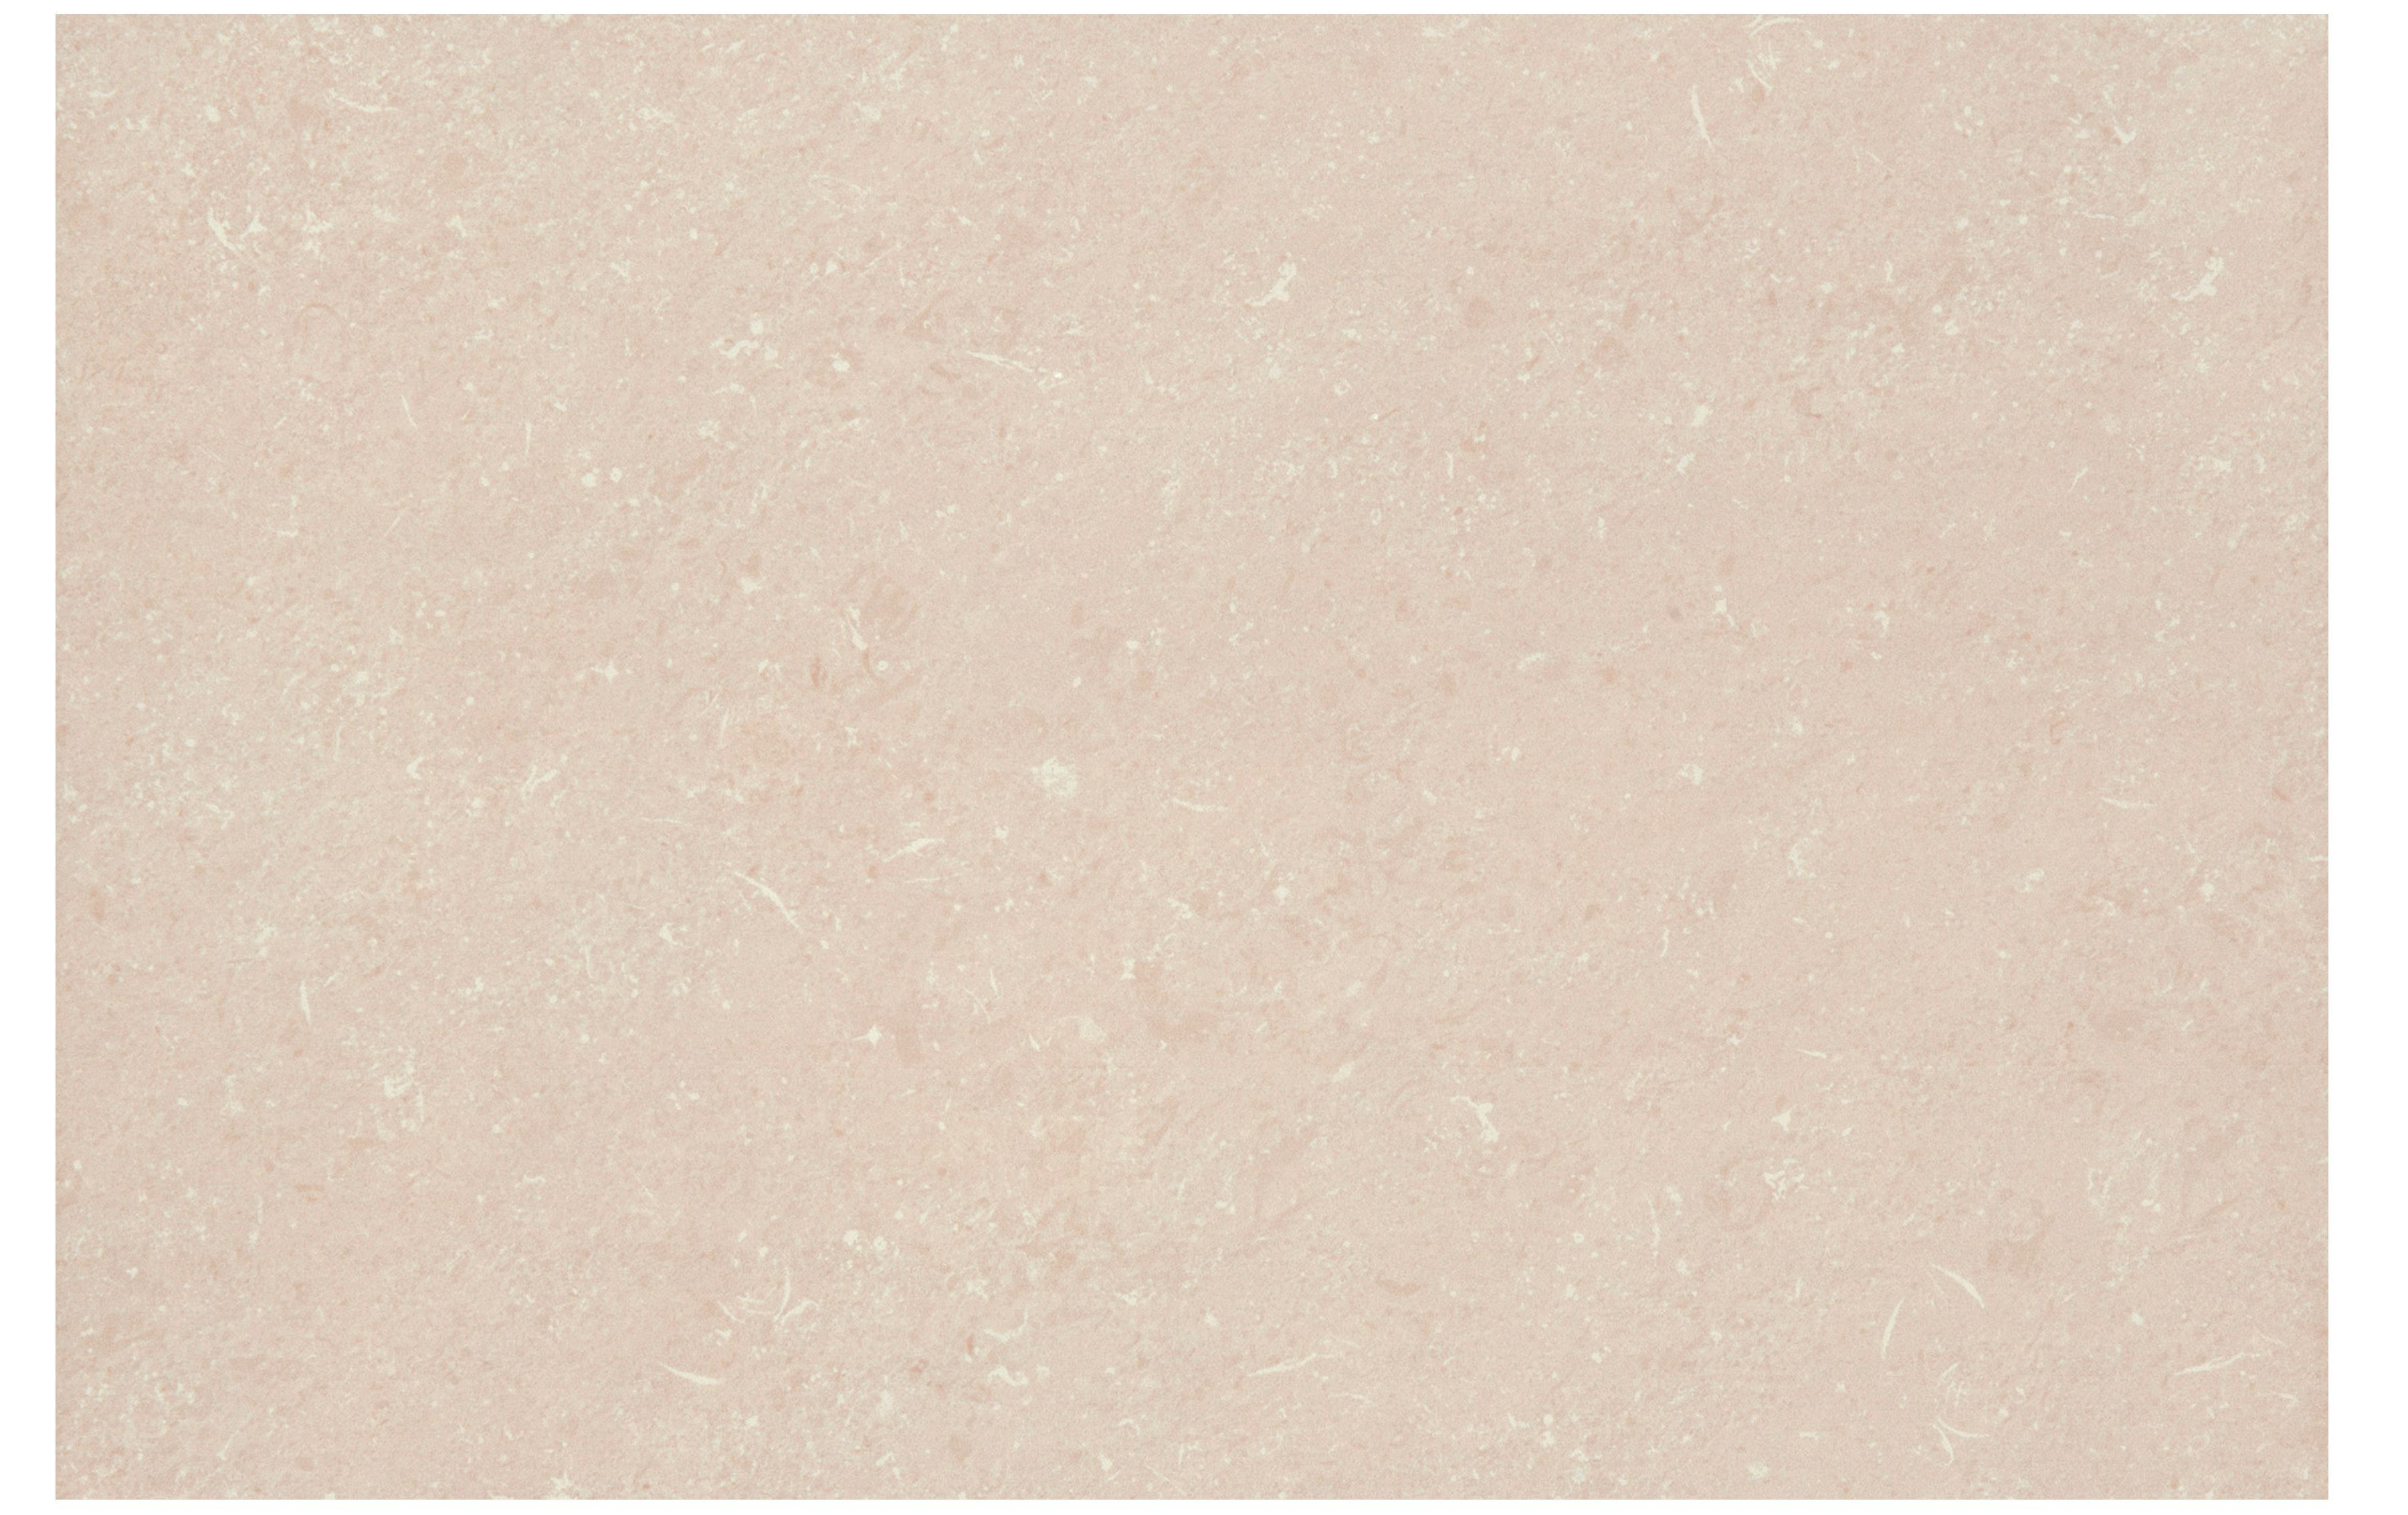 Space Stone Stone Effect Ceramic Wall Tile, Pack Of 8, (l)503mm (w)332mm